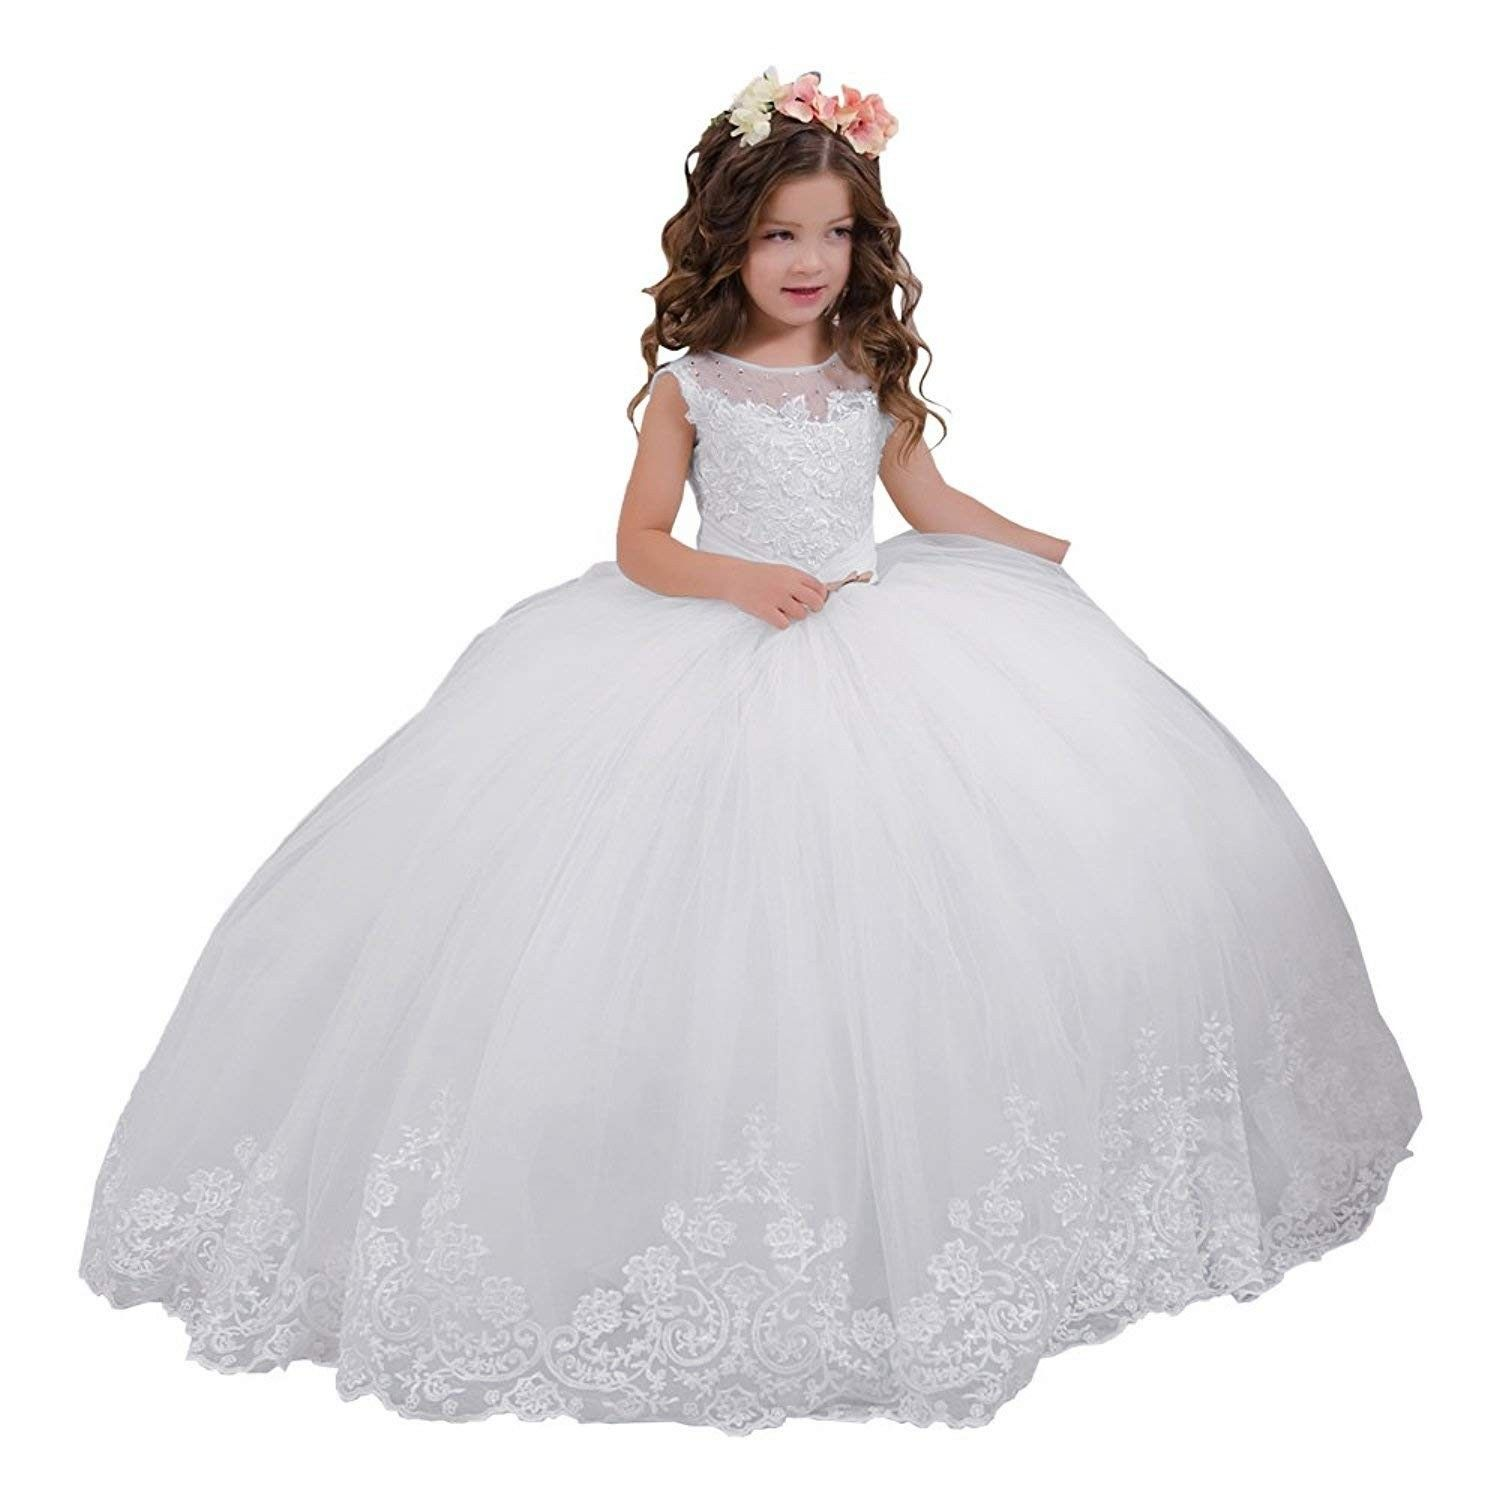 Vintage Lace Embellished Girls Communion Dresses 2 12 Year Old White C718dyh0itg Prom Girl Dresses Wedding Dresses For Kids Girls Communion Dresses [ 1500 x 1500 Pixel ]